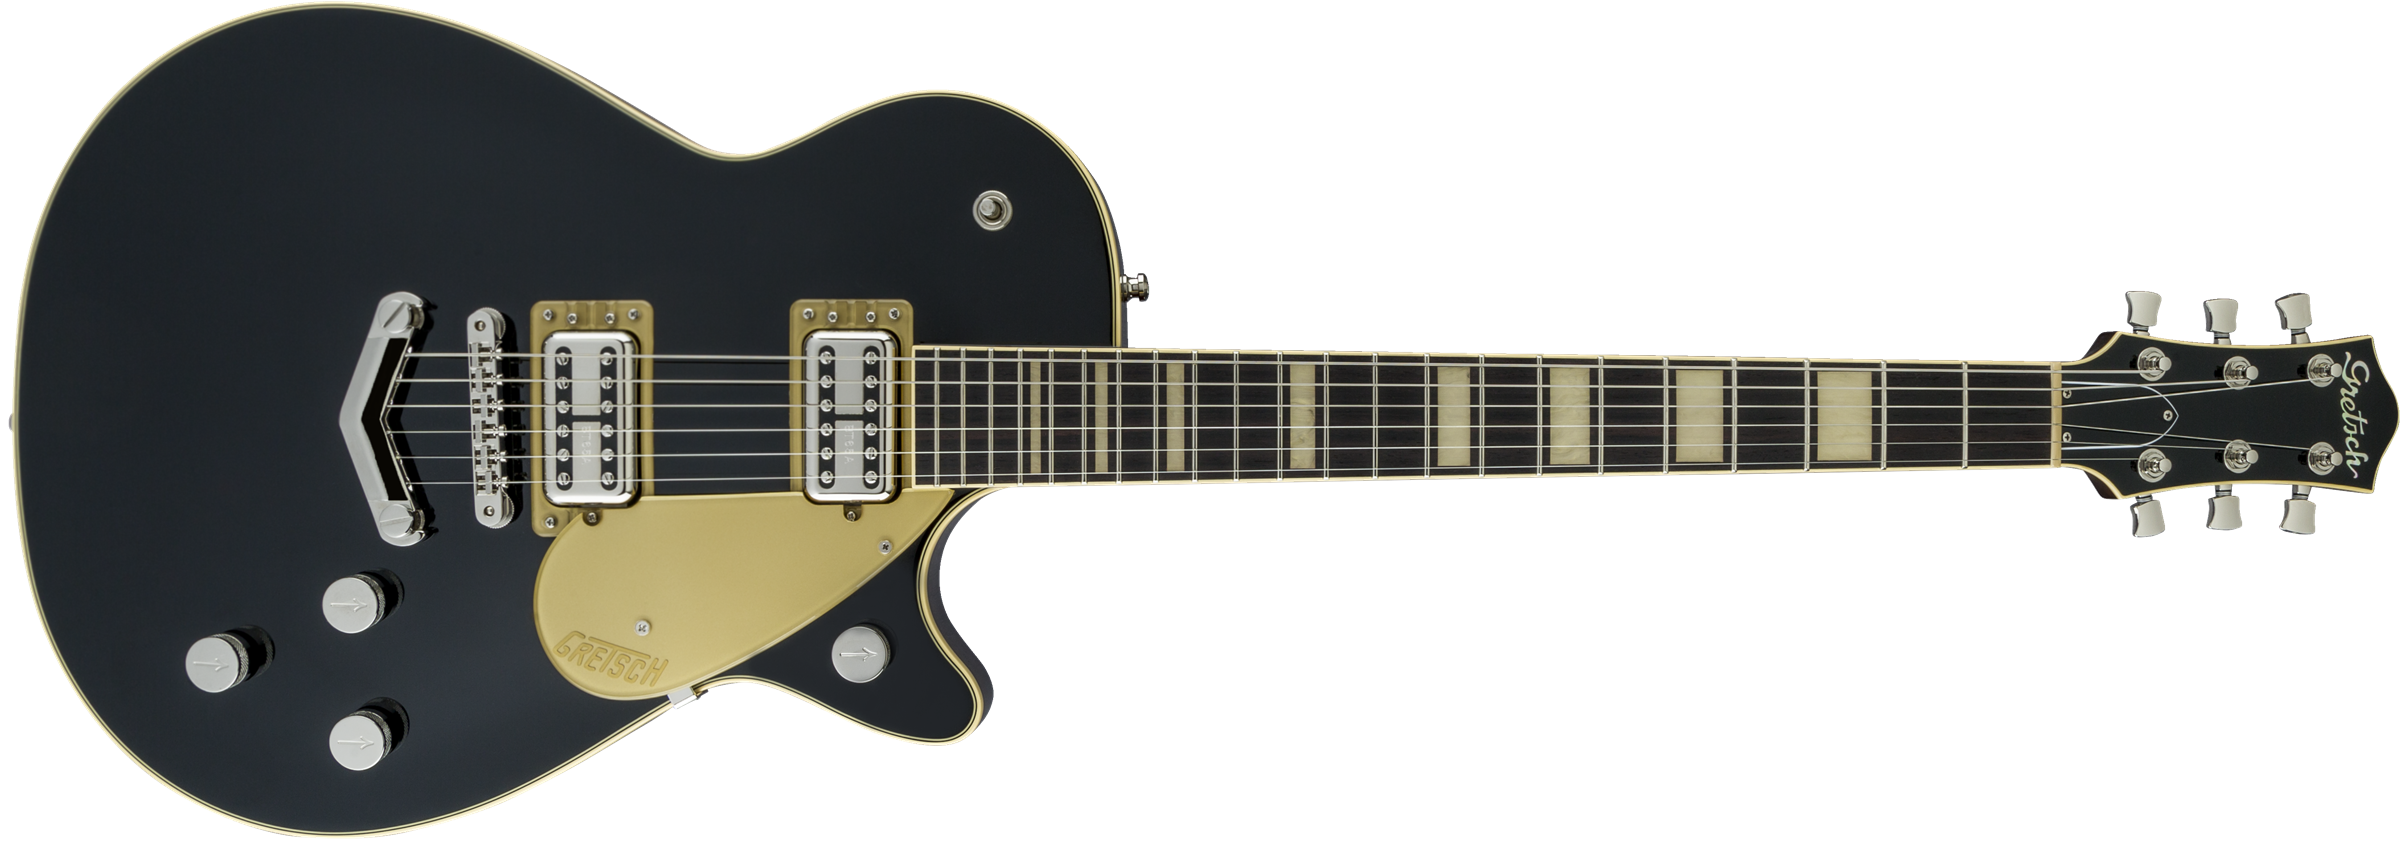 GRETSCH-G6228-Players-Edition-Jet-BT-with-V-Stoptail-Rosewood-Fingerboard-Black-sku-571001244